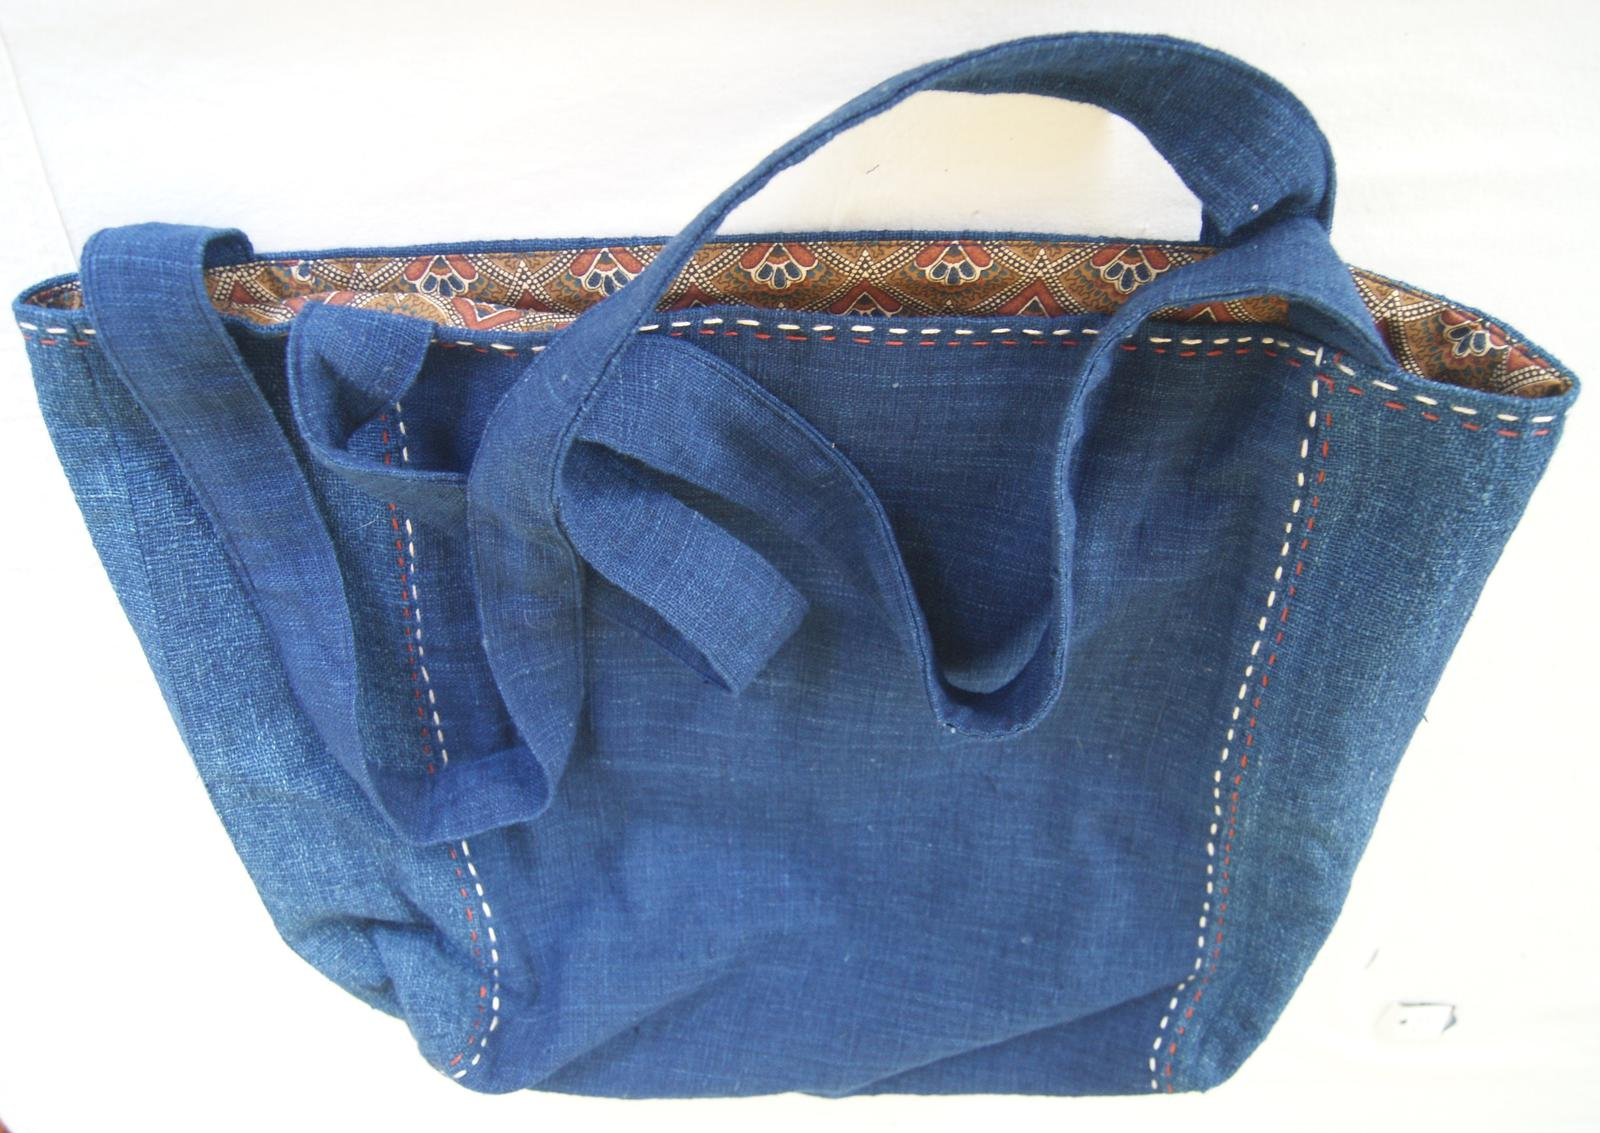 Large indigo fabric bag with hand stitching